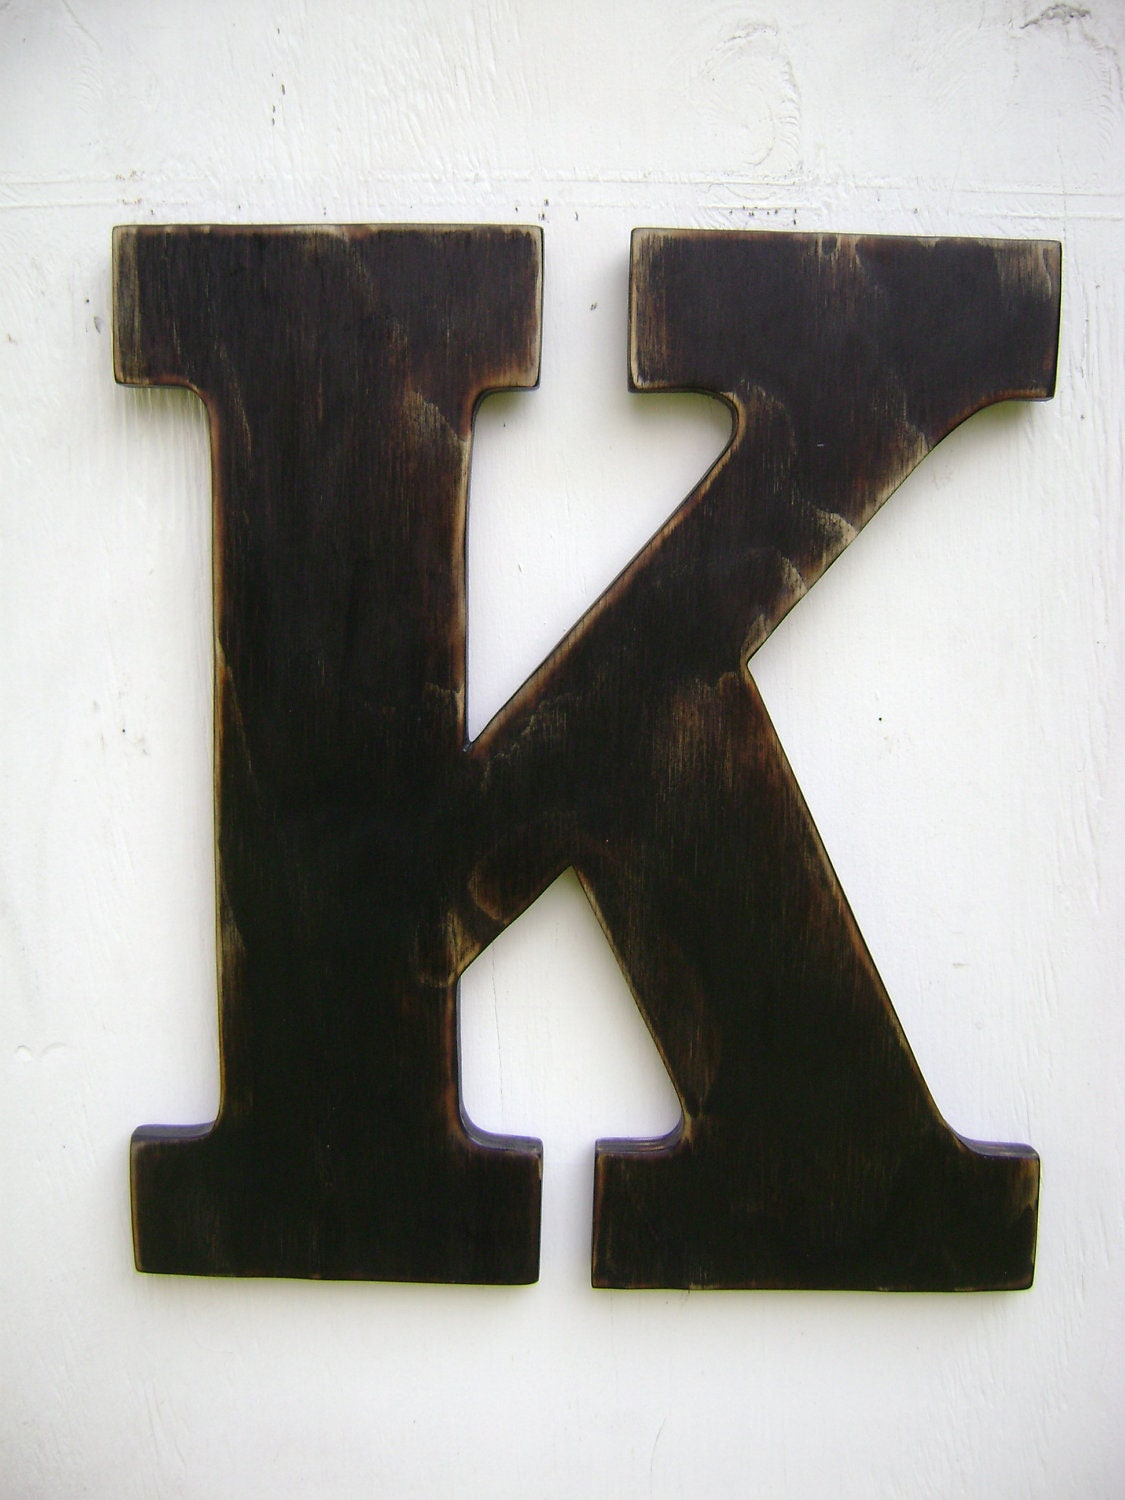 Large wood letter k shabby chic wall hanging decor 18 for Large wooden letter k